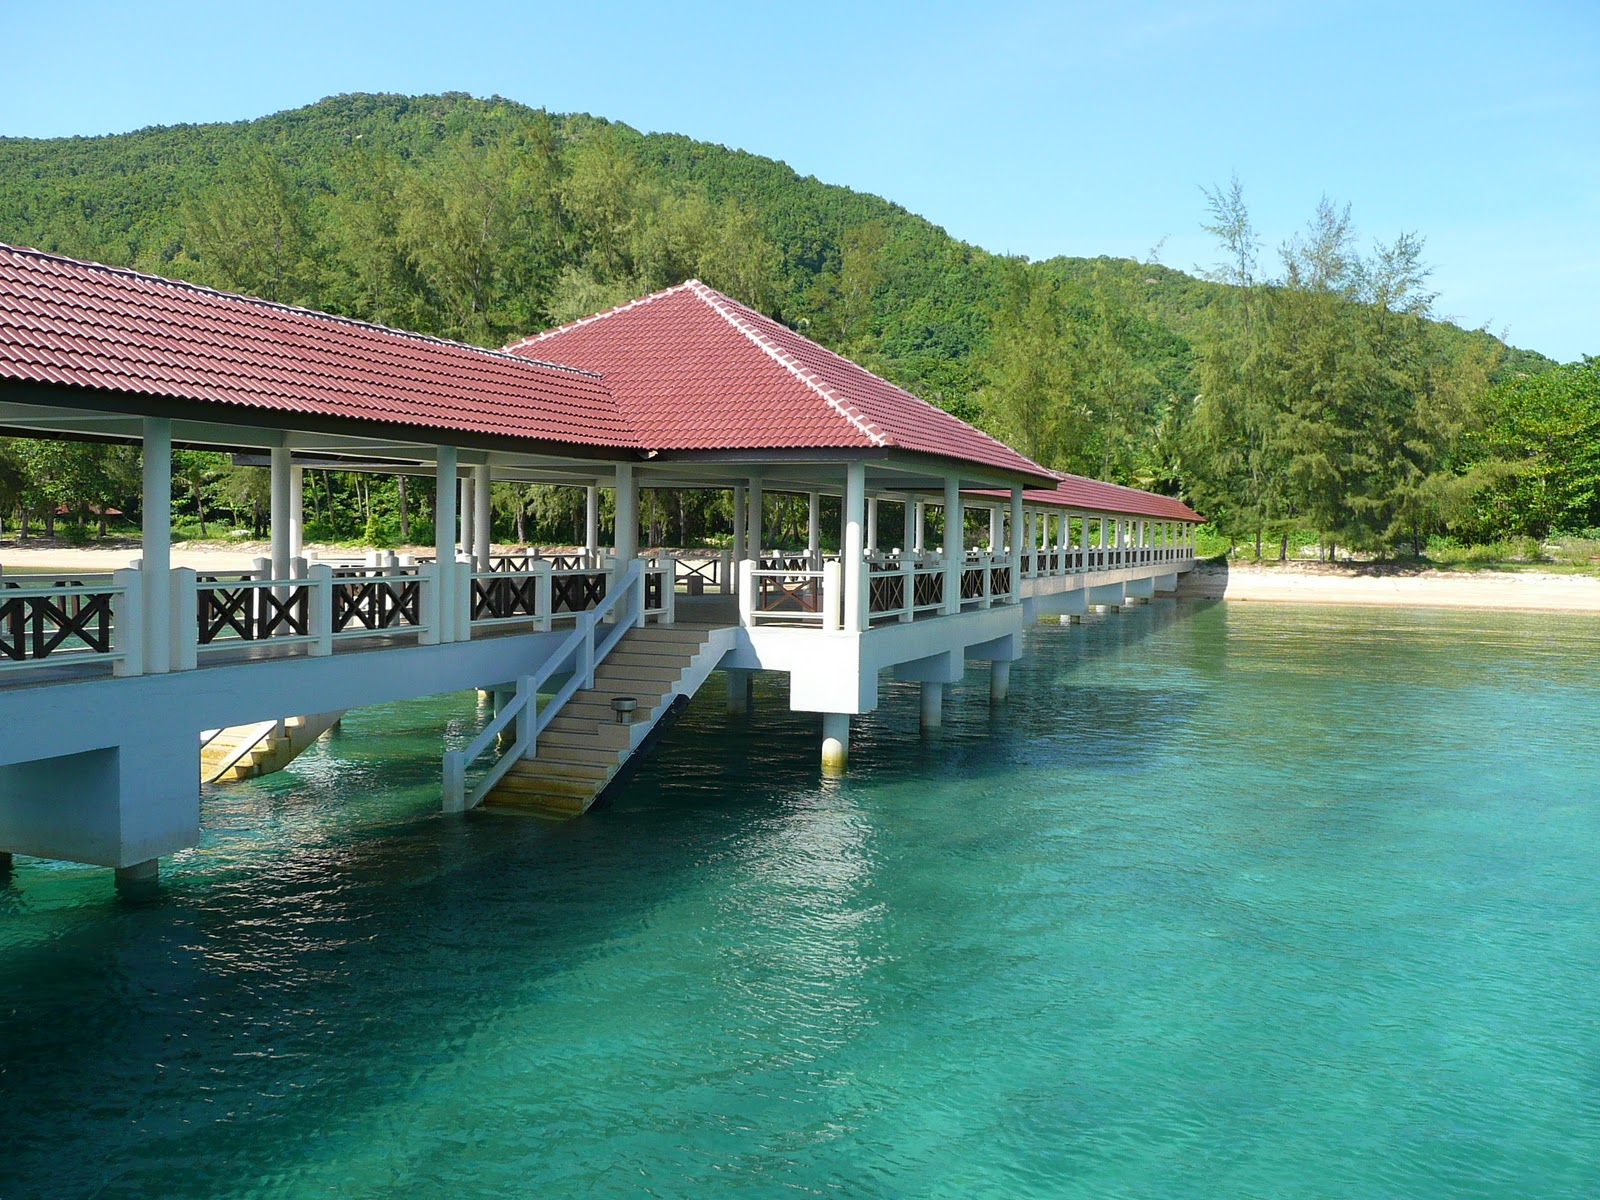 The Pulau Bidong jetty, only 20 minutes by boat from the Merang jetty.